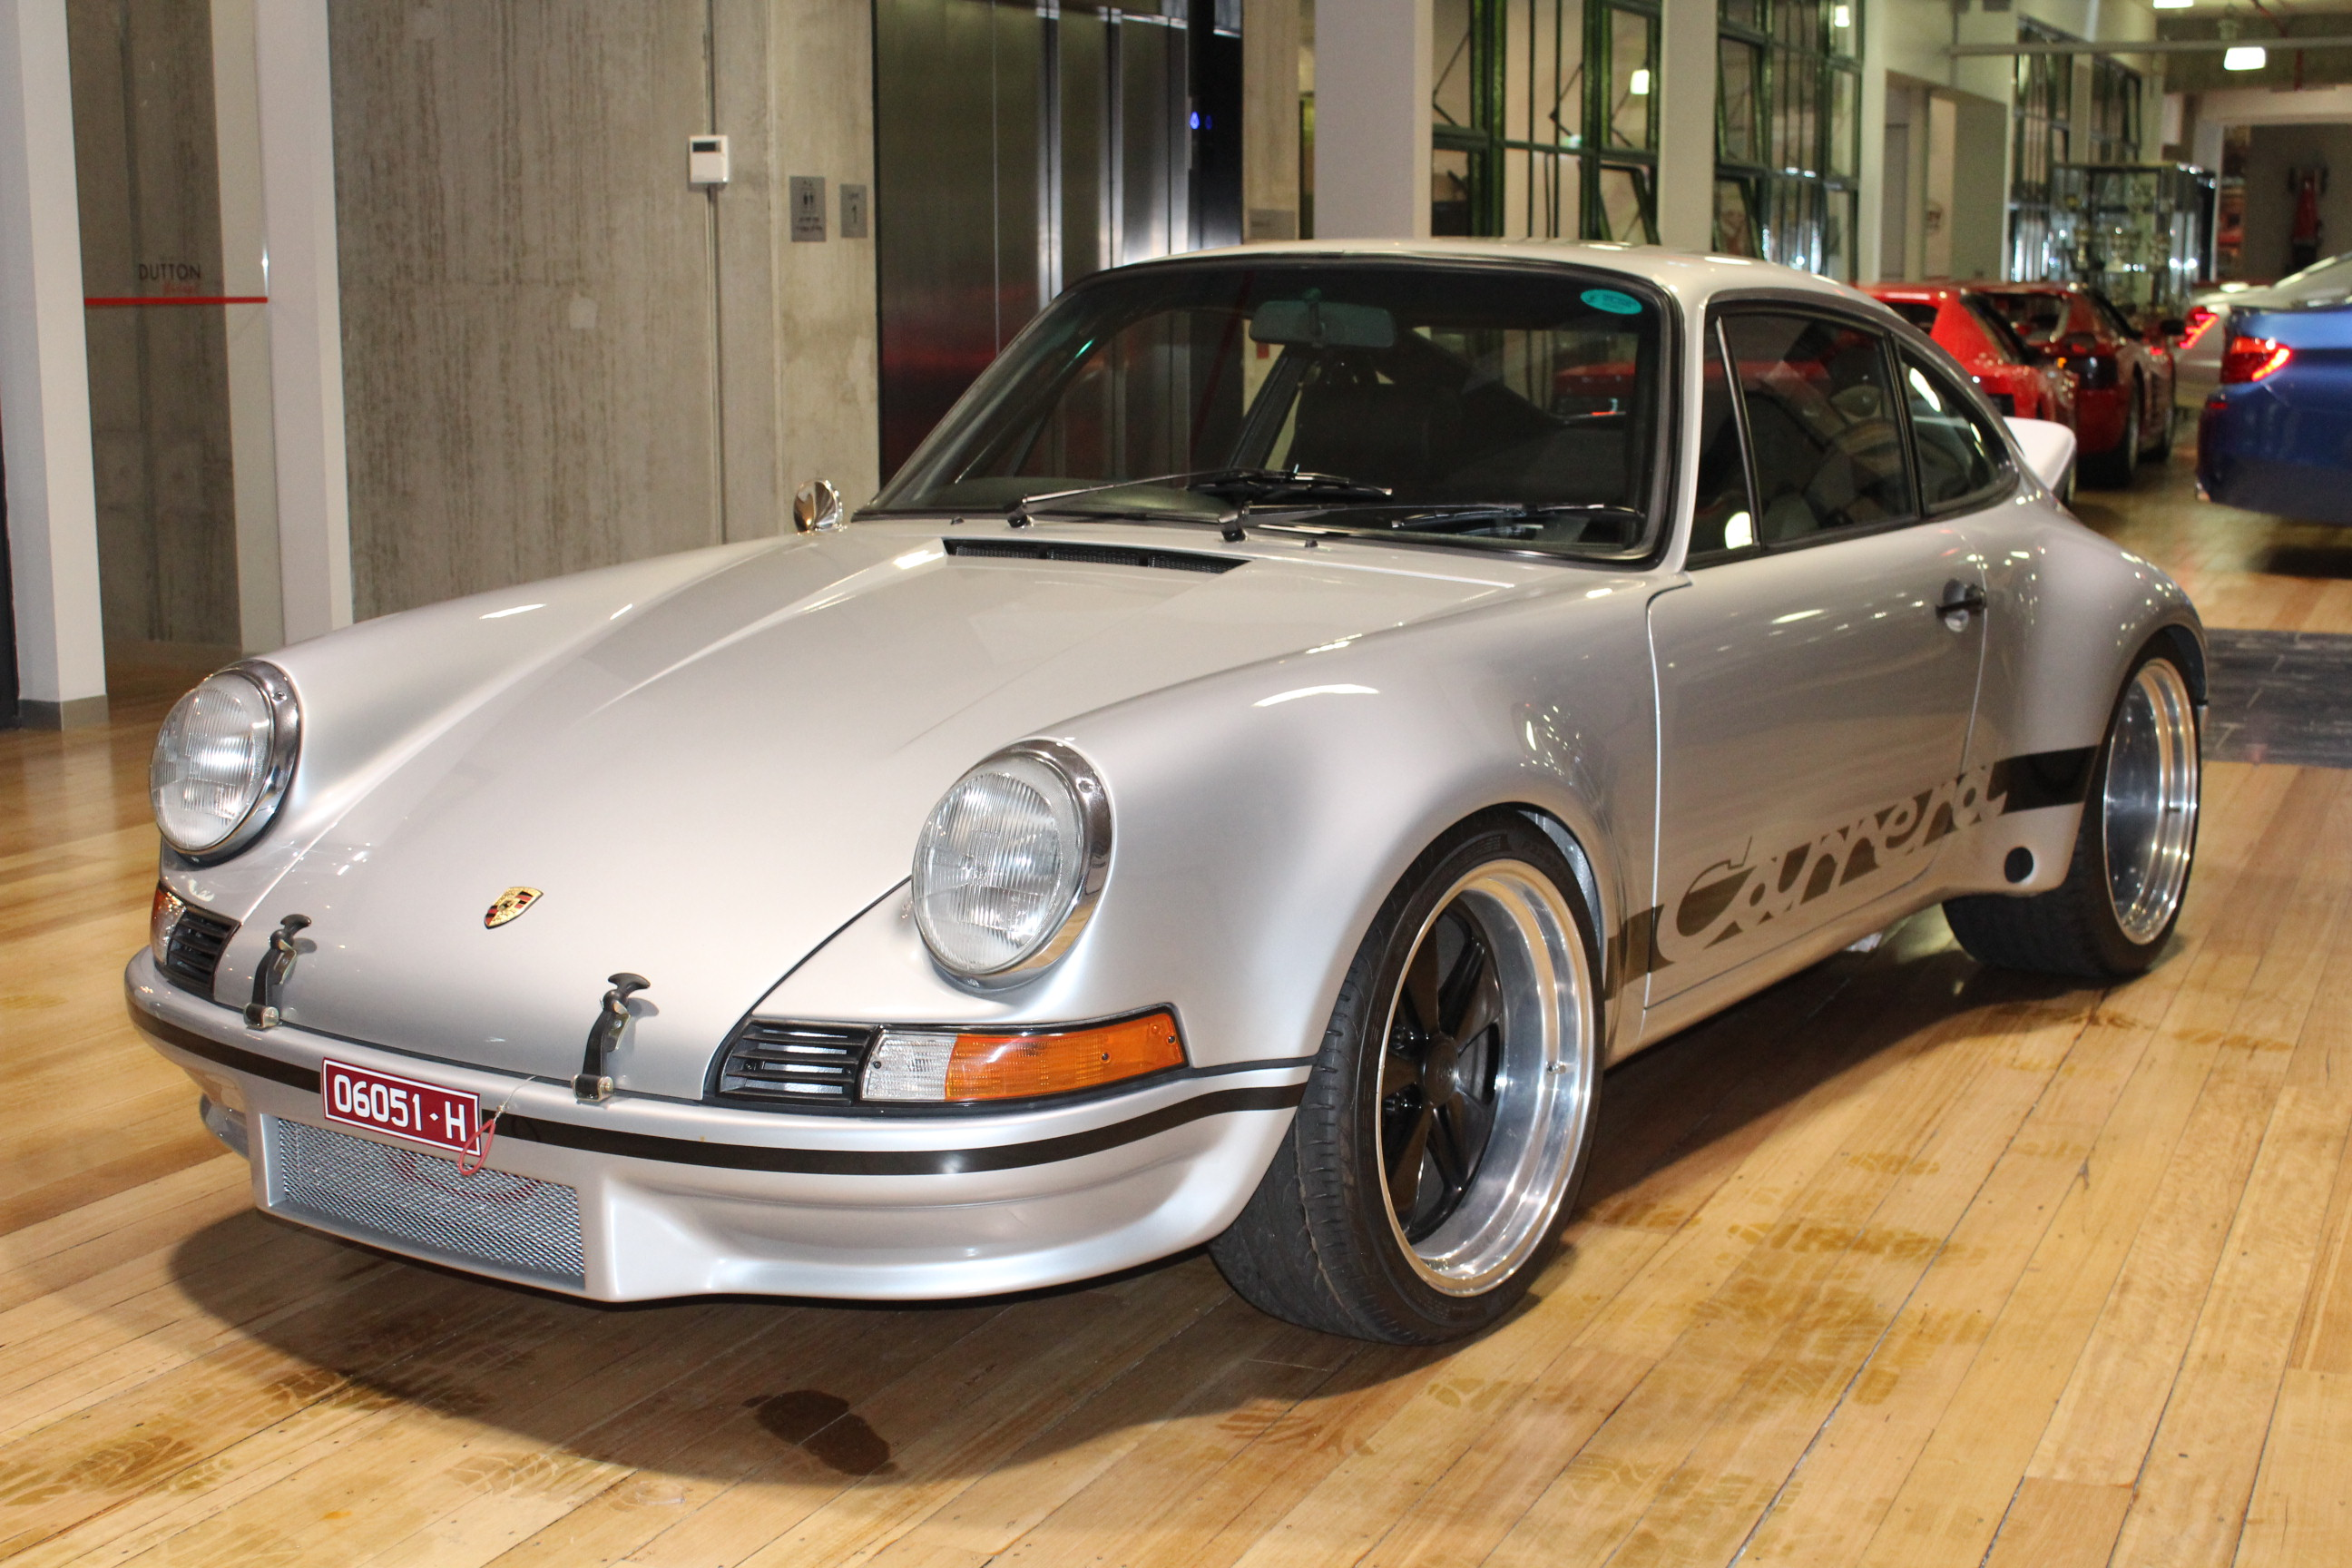 1975 Porsche 911 Rsr Recreation For Sale